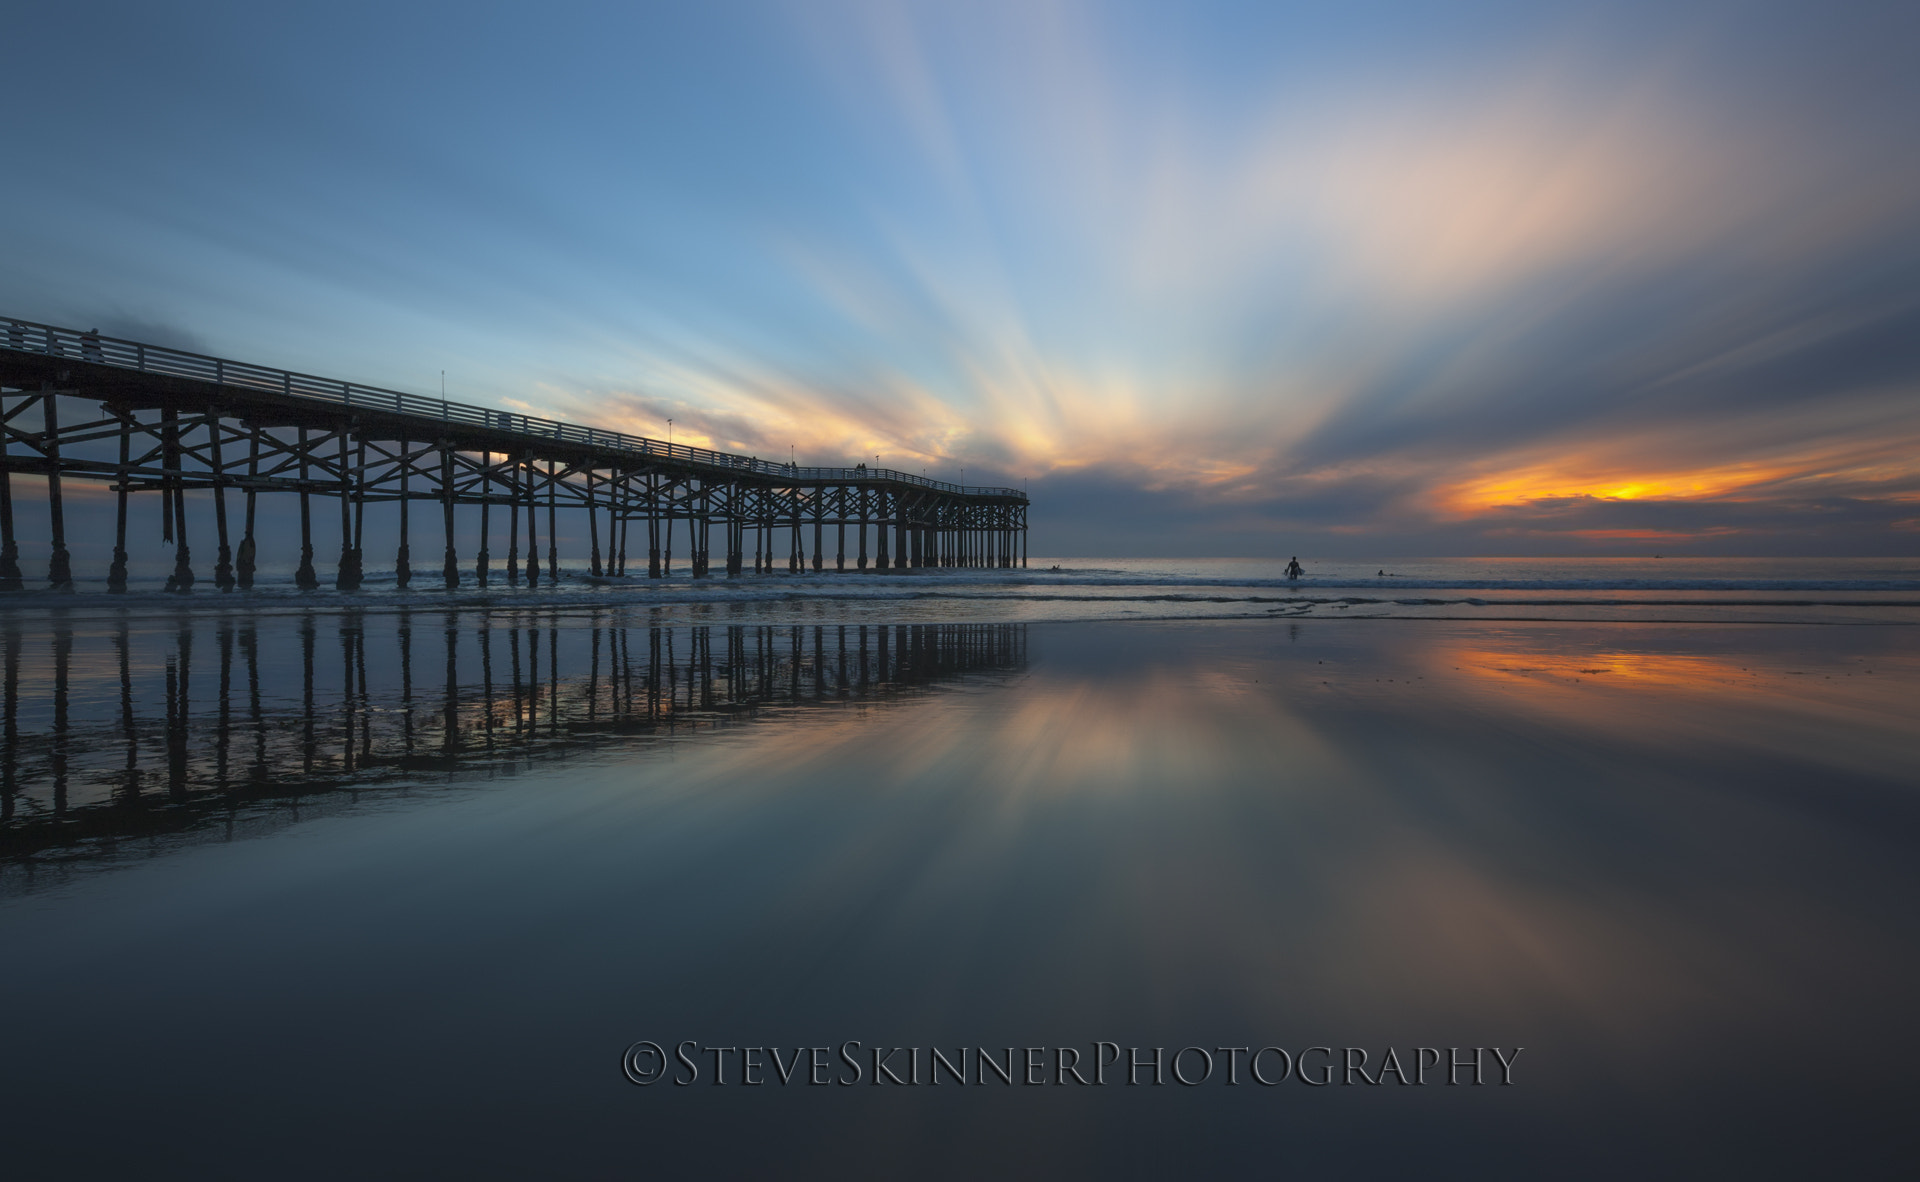 Photograph Motion - Crystal Pier by Steve Skinner on 500px